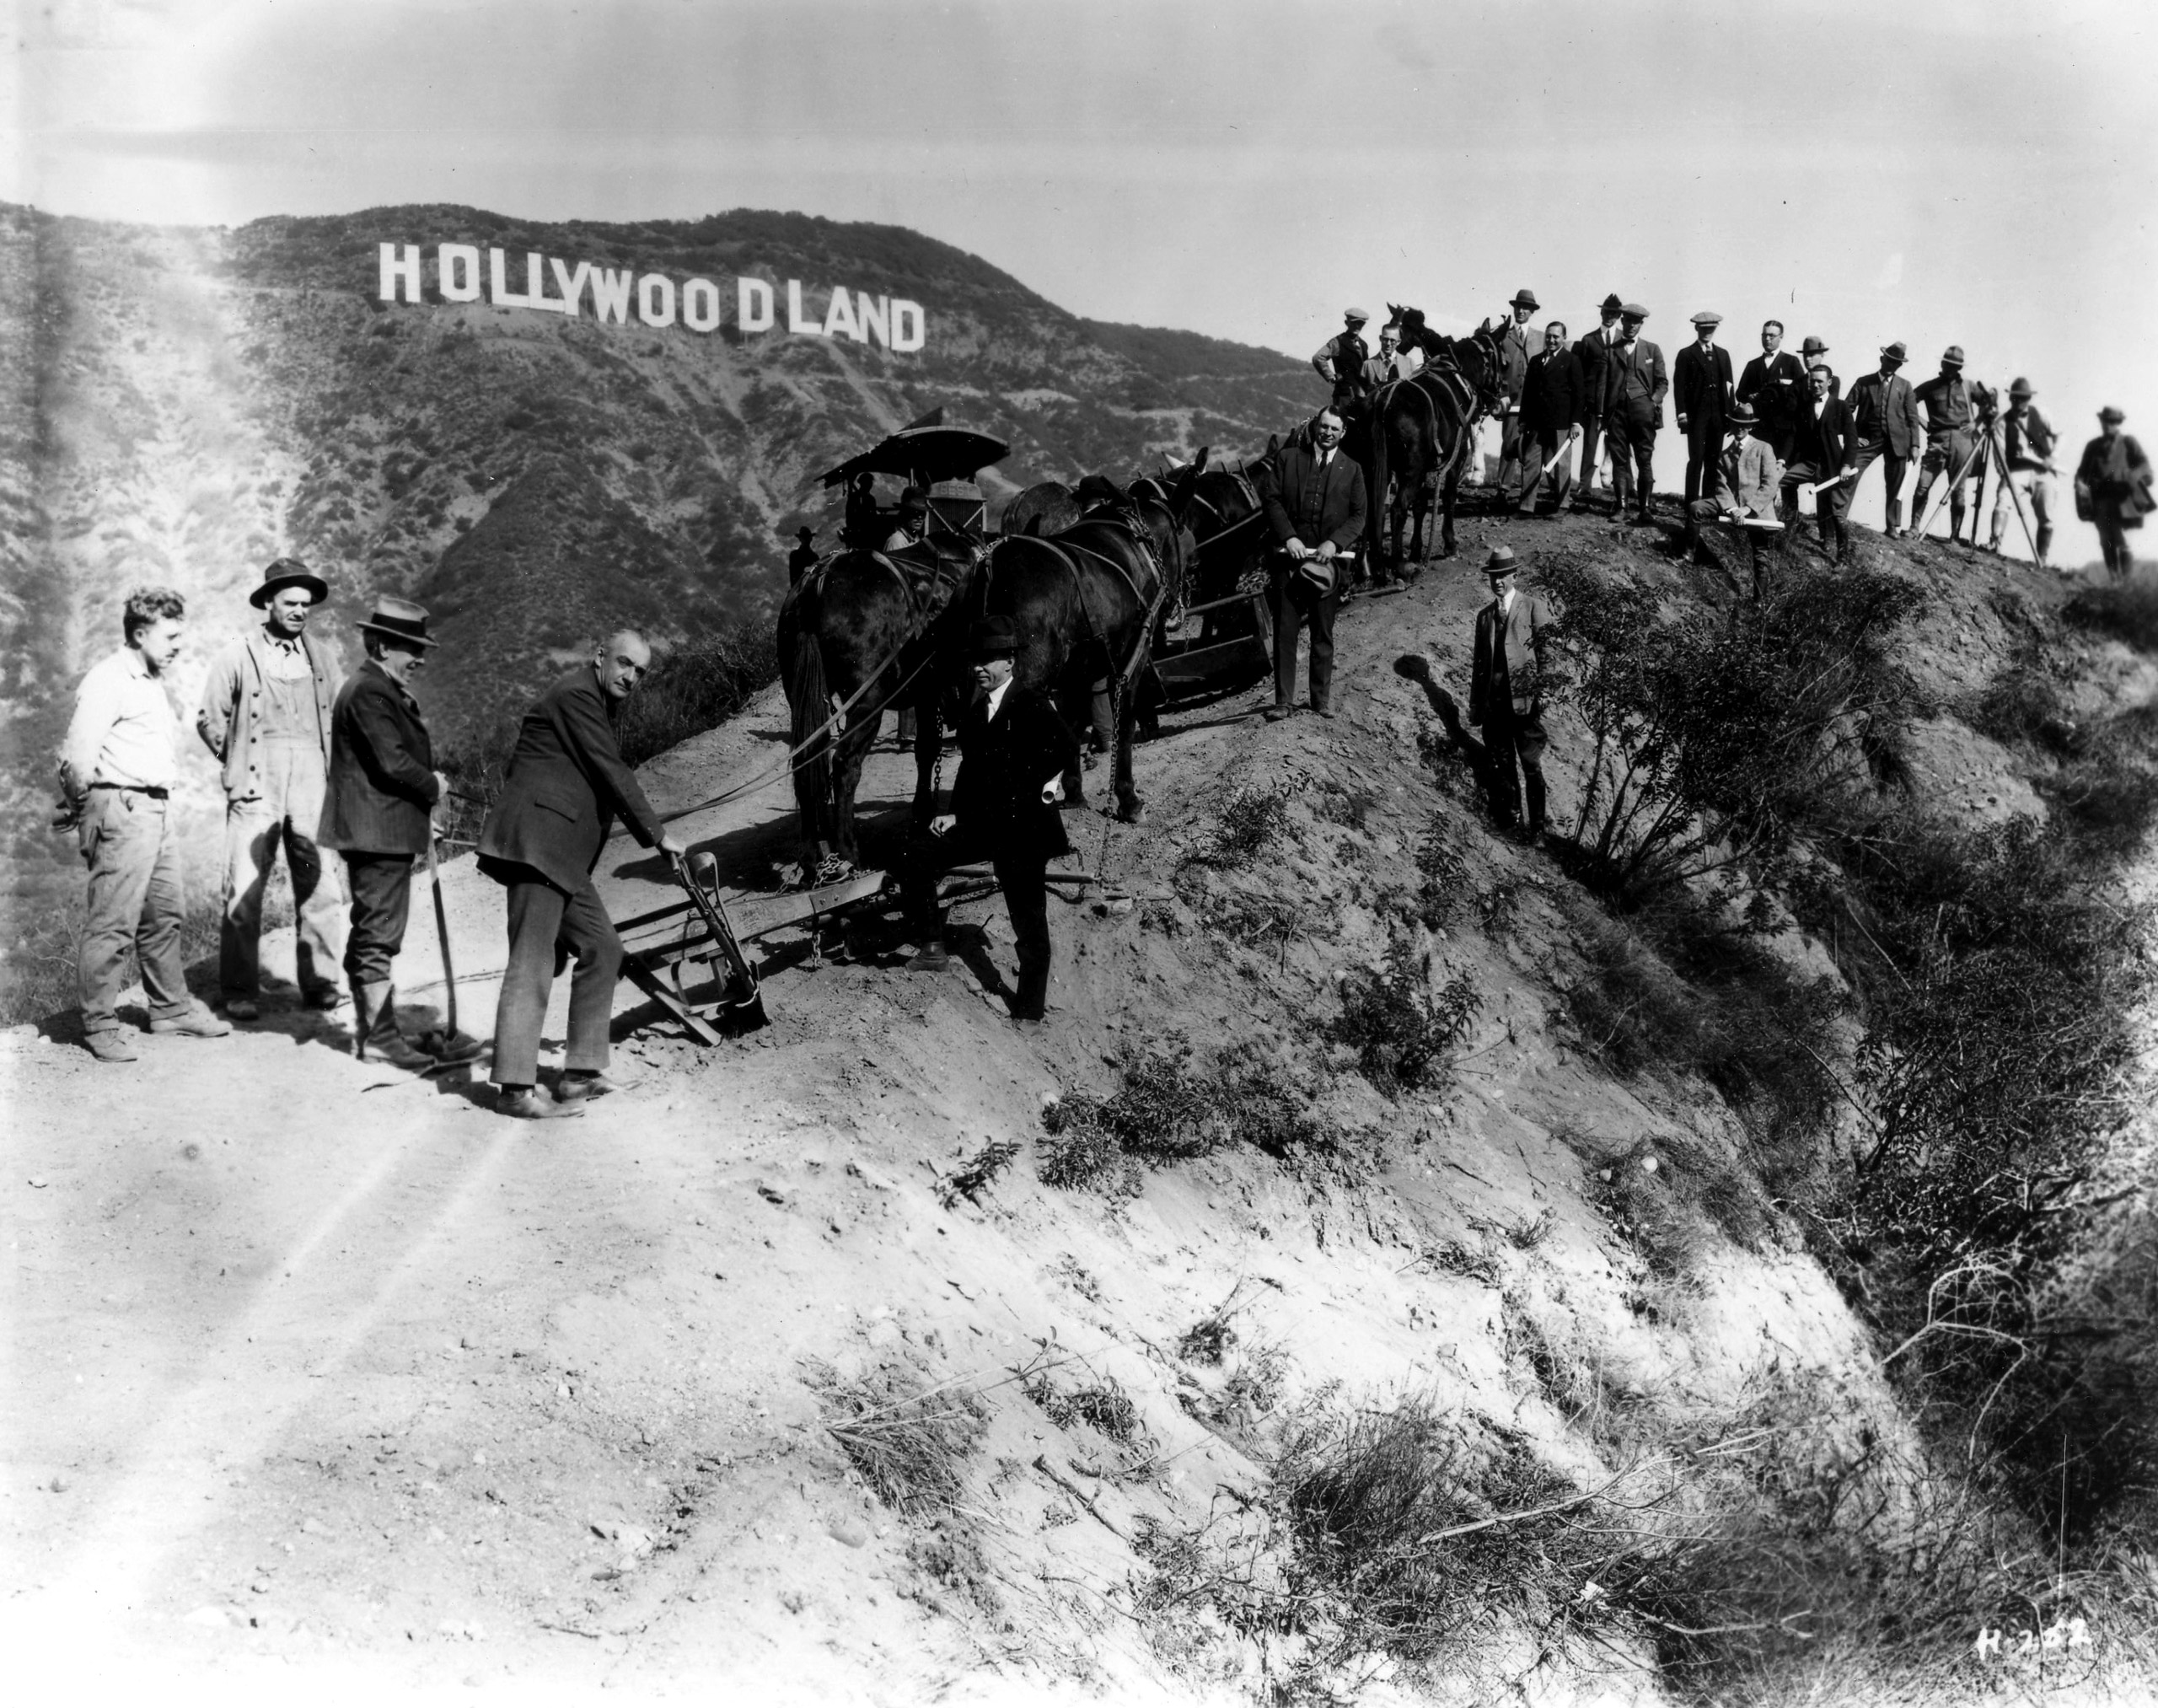 Dedication of the sign, 1923.